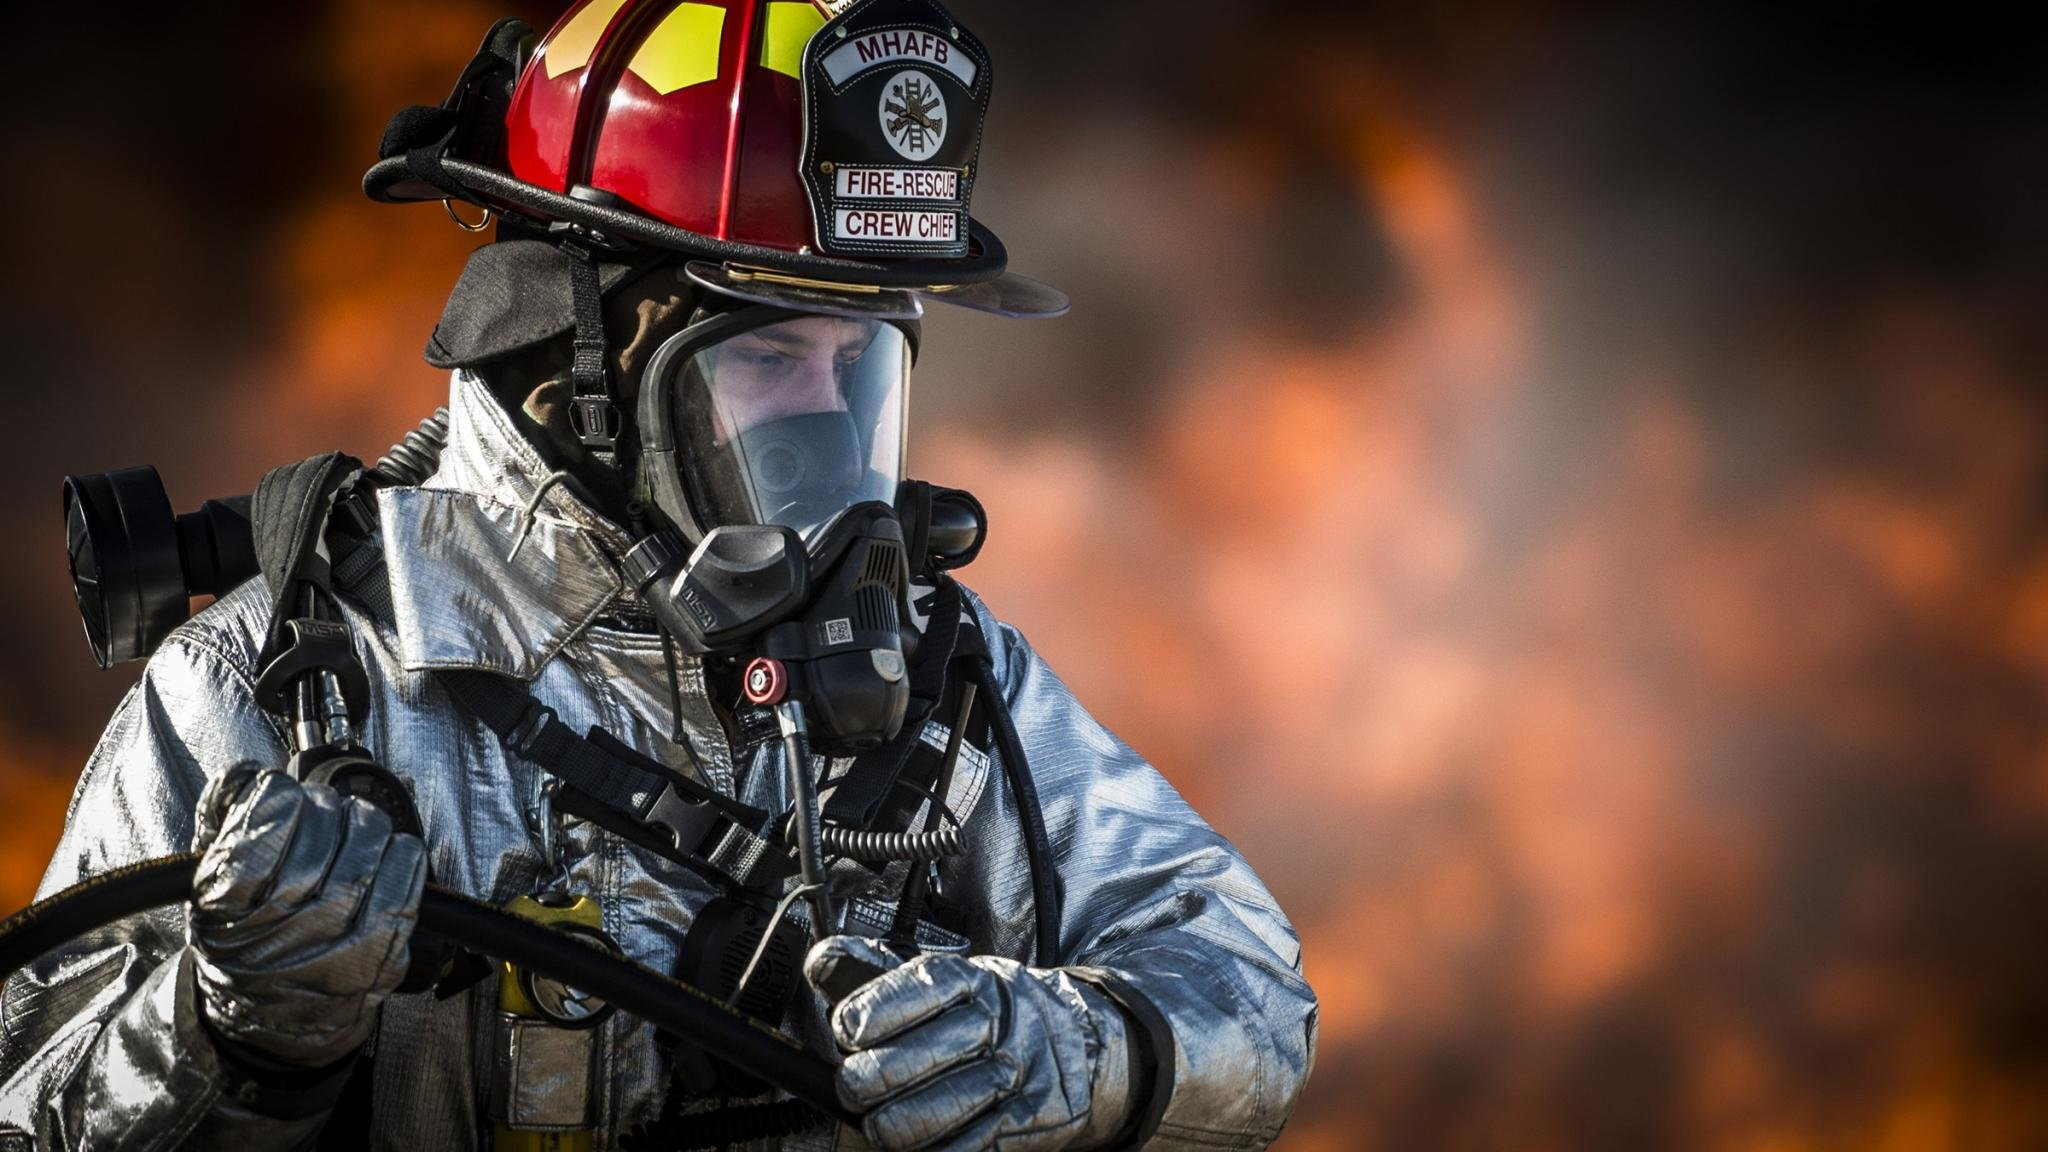 Awesome Firefighter Free Wallpaper ID27731 For Hd 2048x1152 PC